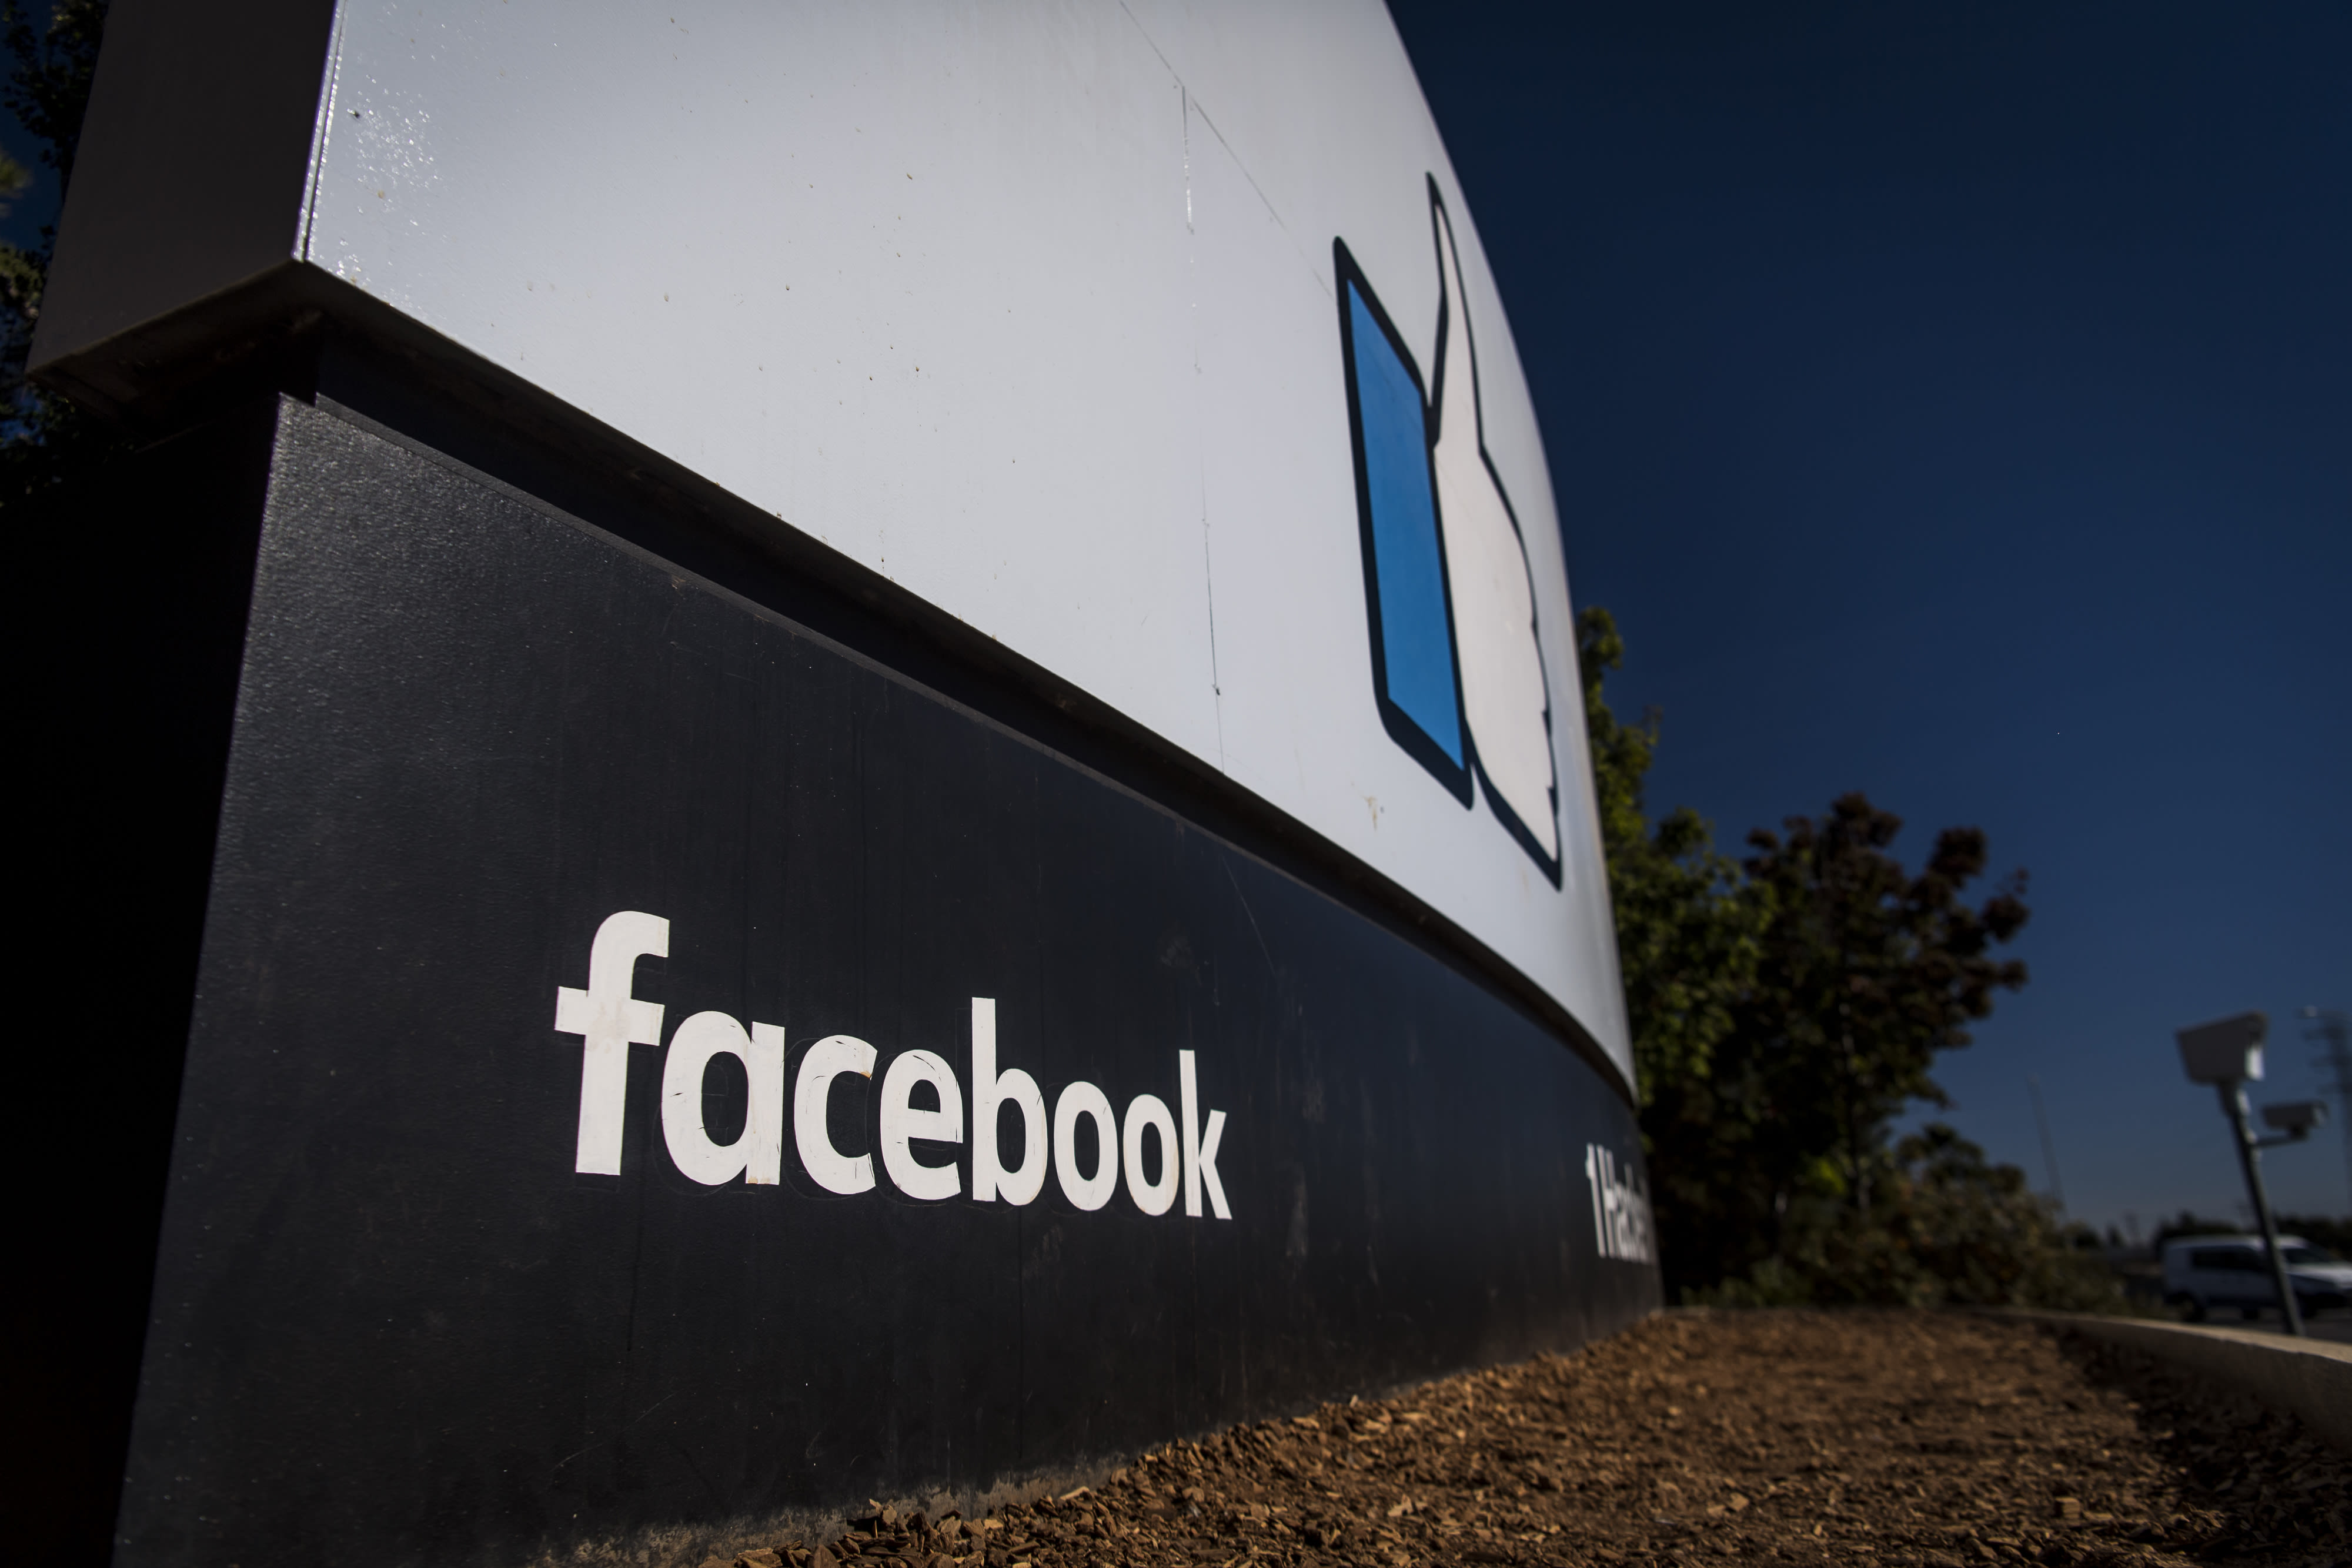 Facebook reaches agreement with UK regulator over suspected data misuse